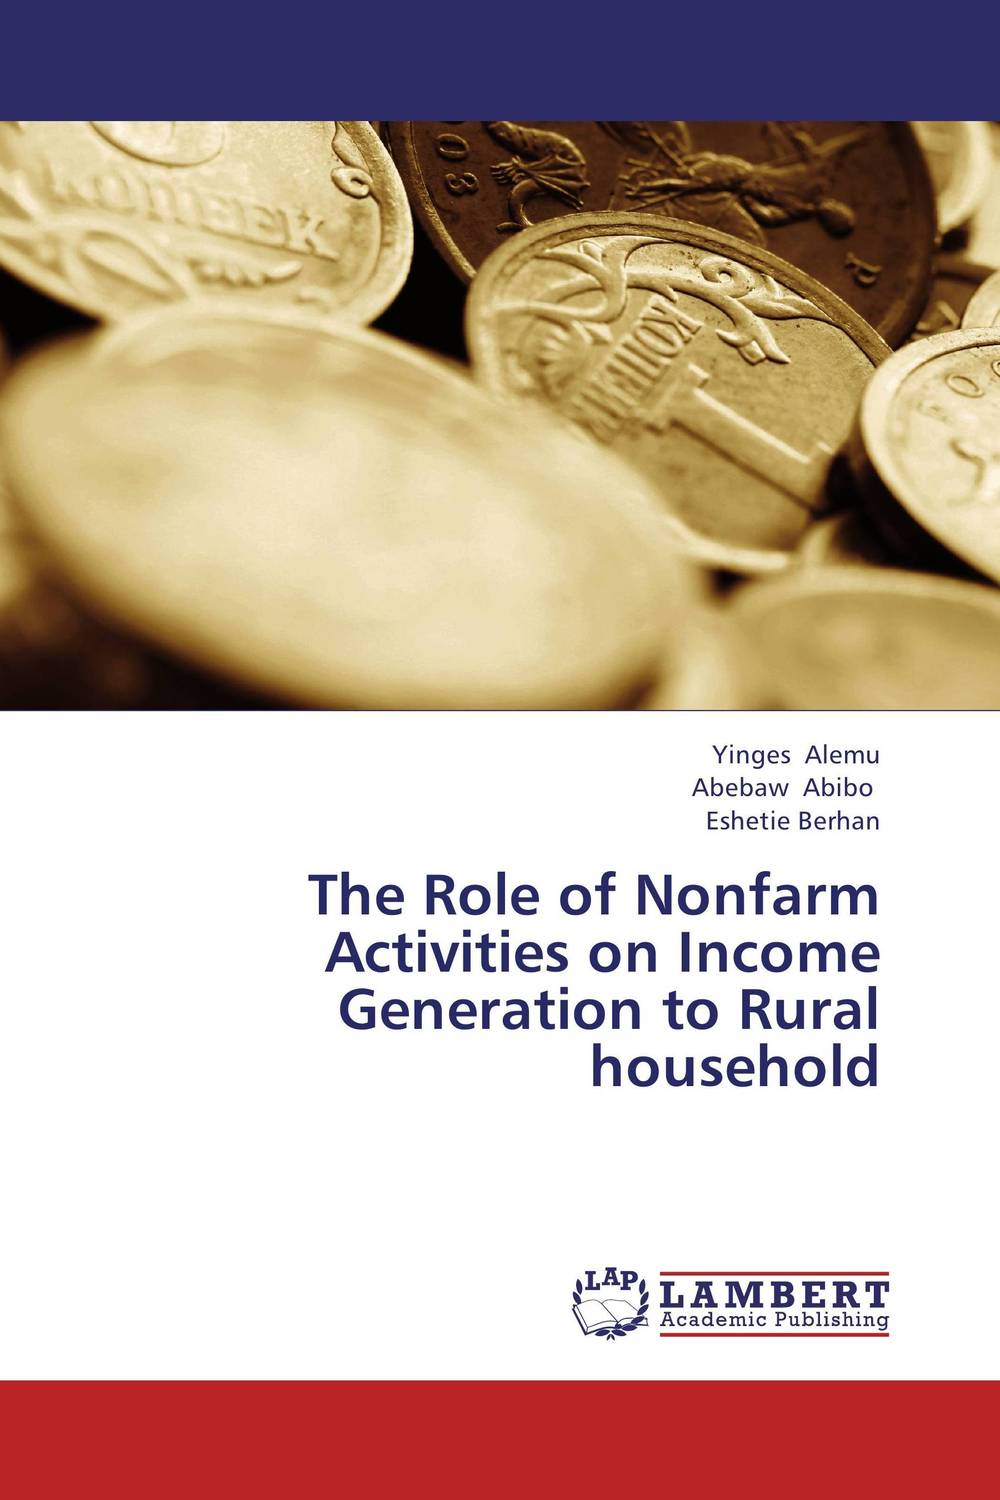 Фото The Role of Nonfarm Activities on Income Generation to Rural household cervical cancer in amhara region in ethiopia